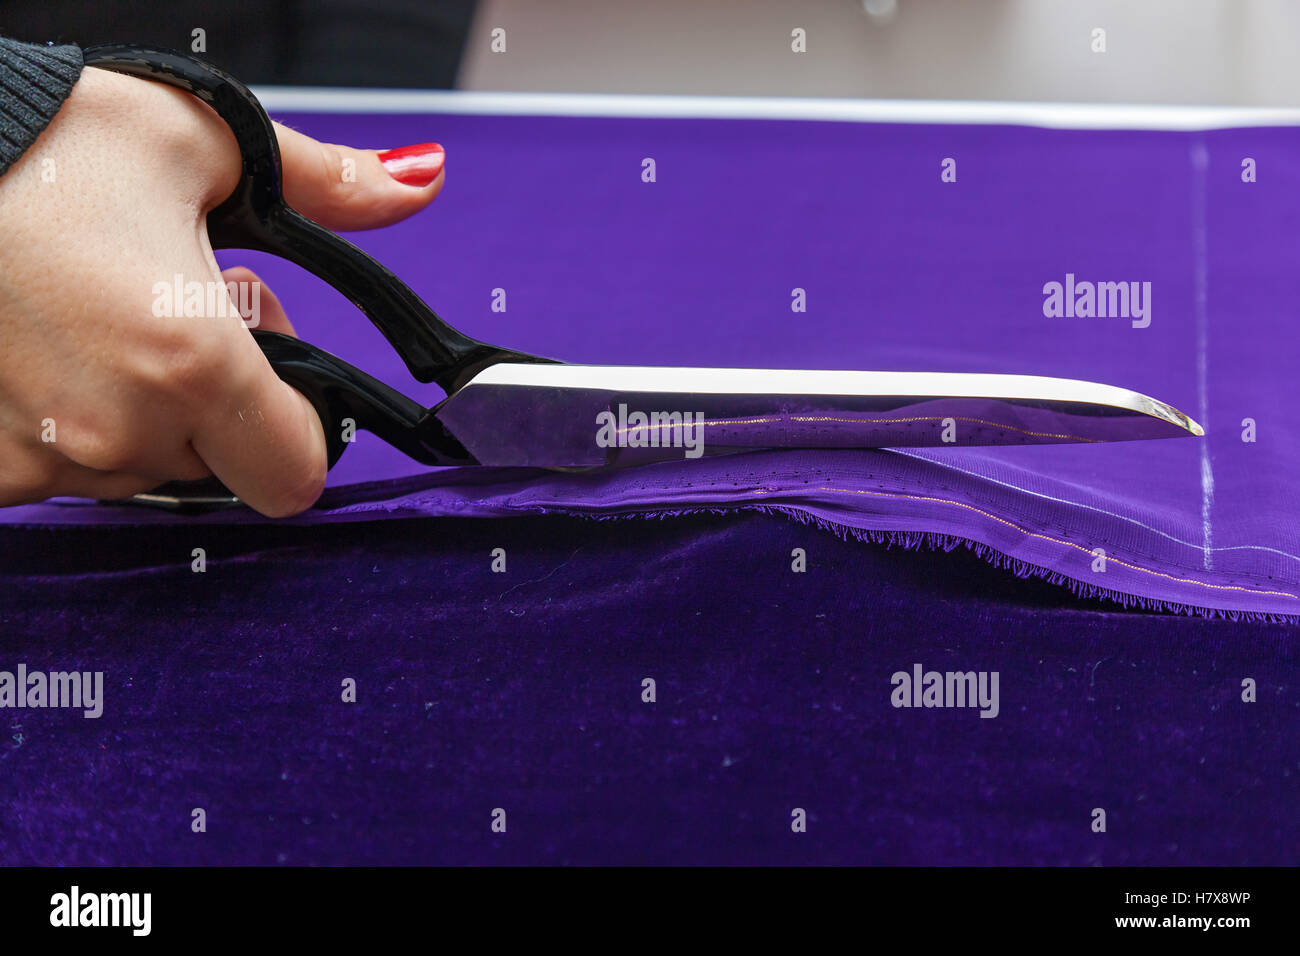 Scissors and violet textile. Close up photo if the female hand with the scissors cutting the violet fabric. Stock Photo